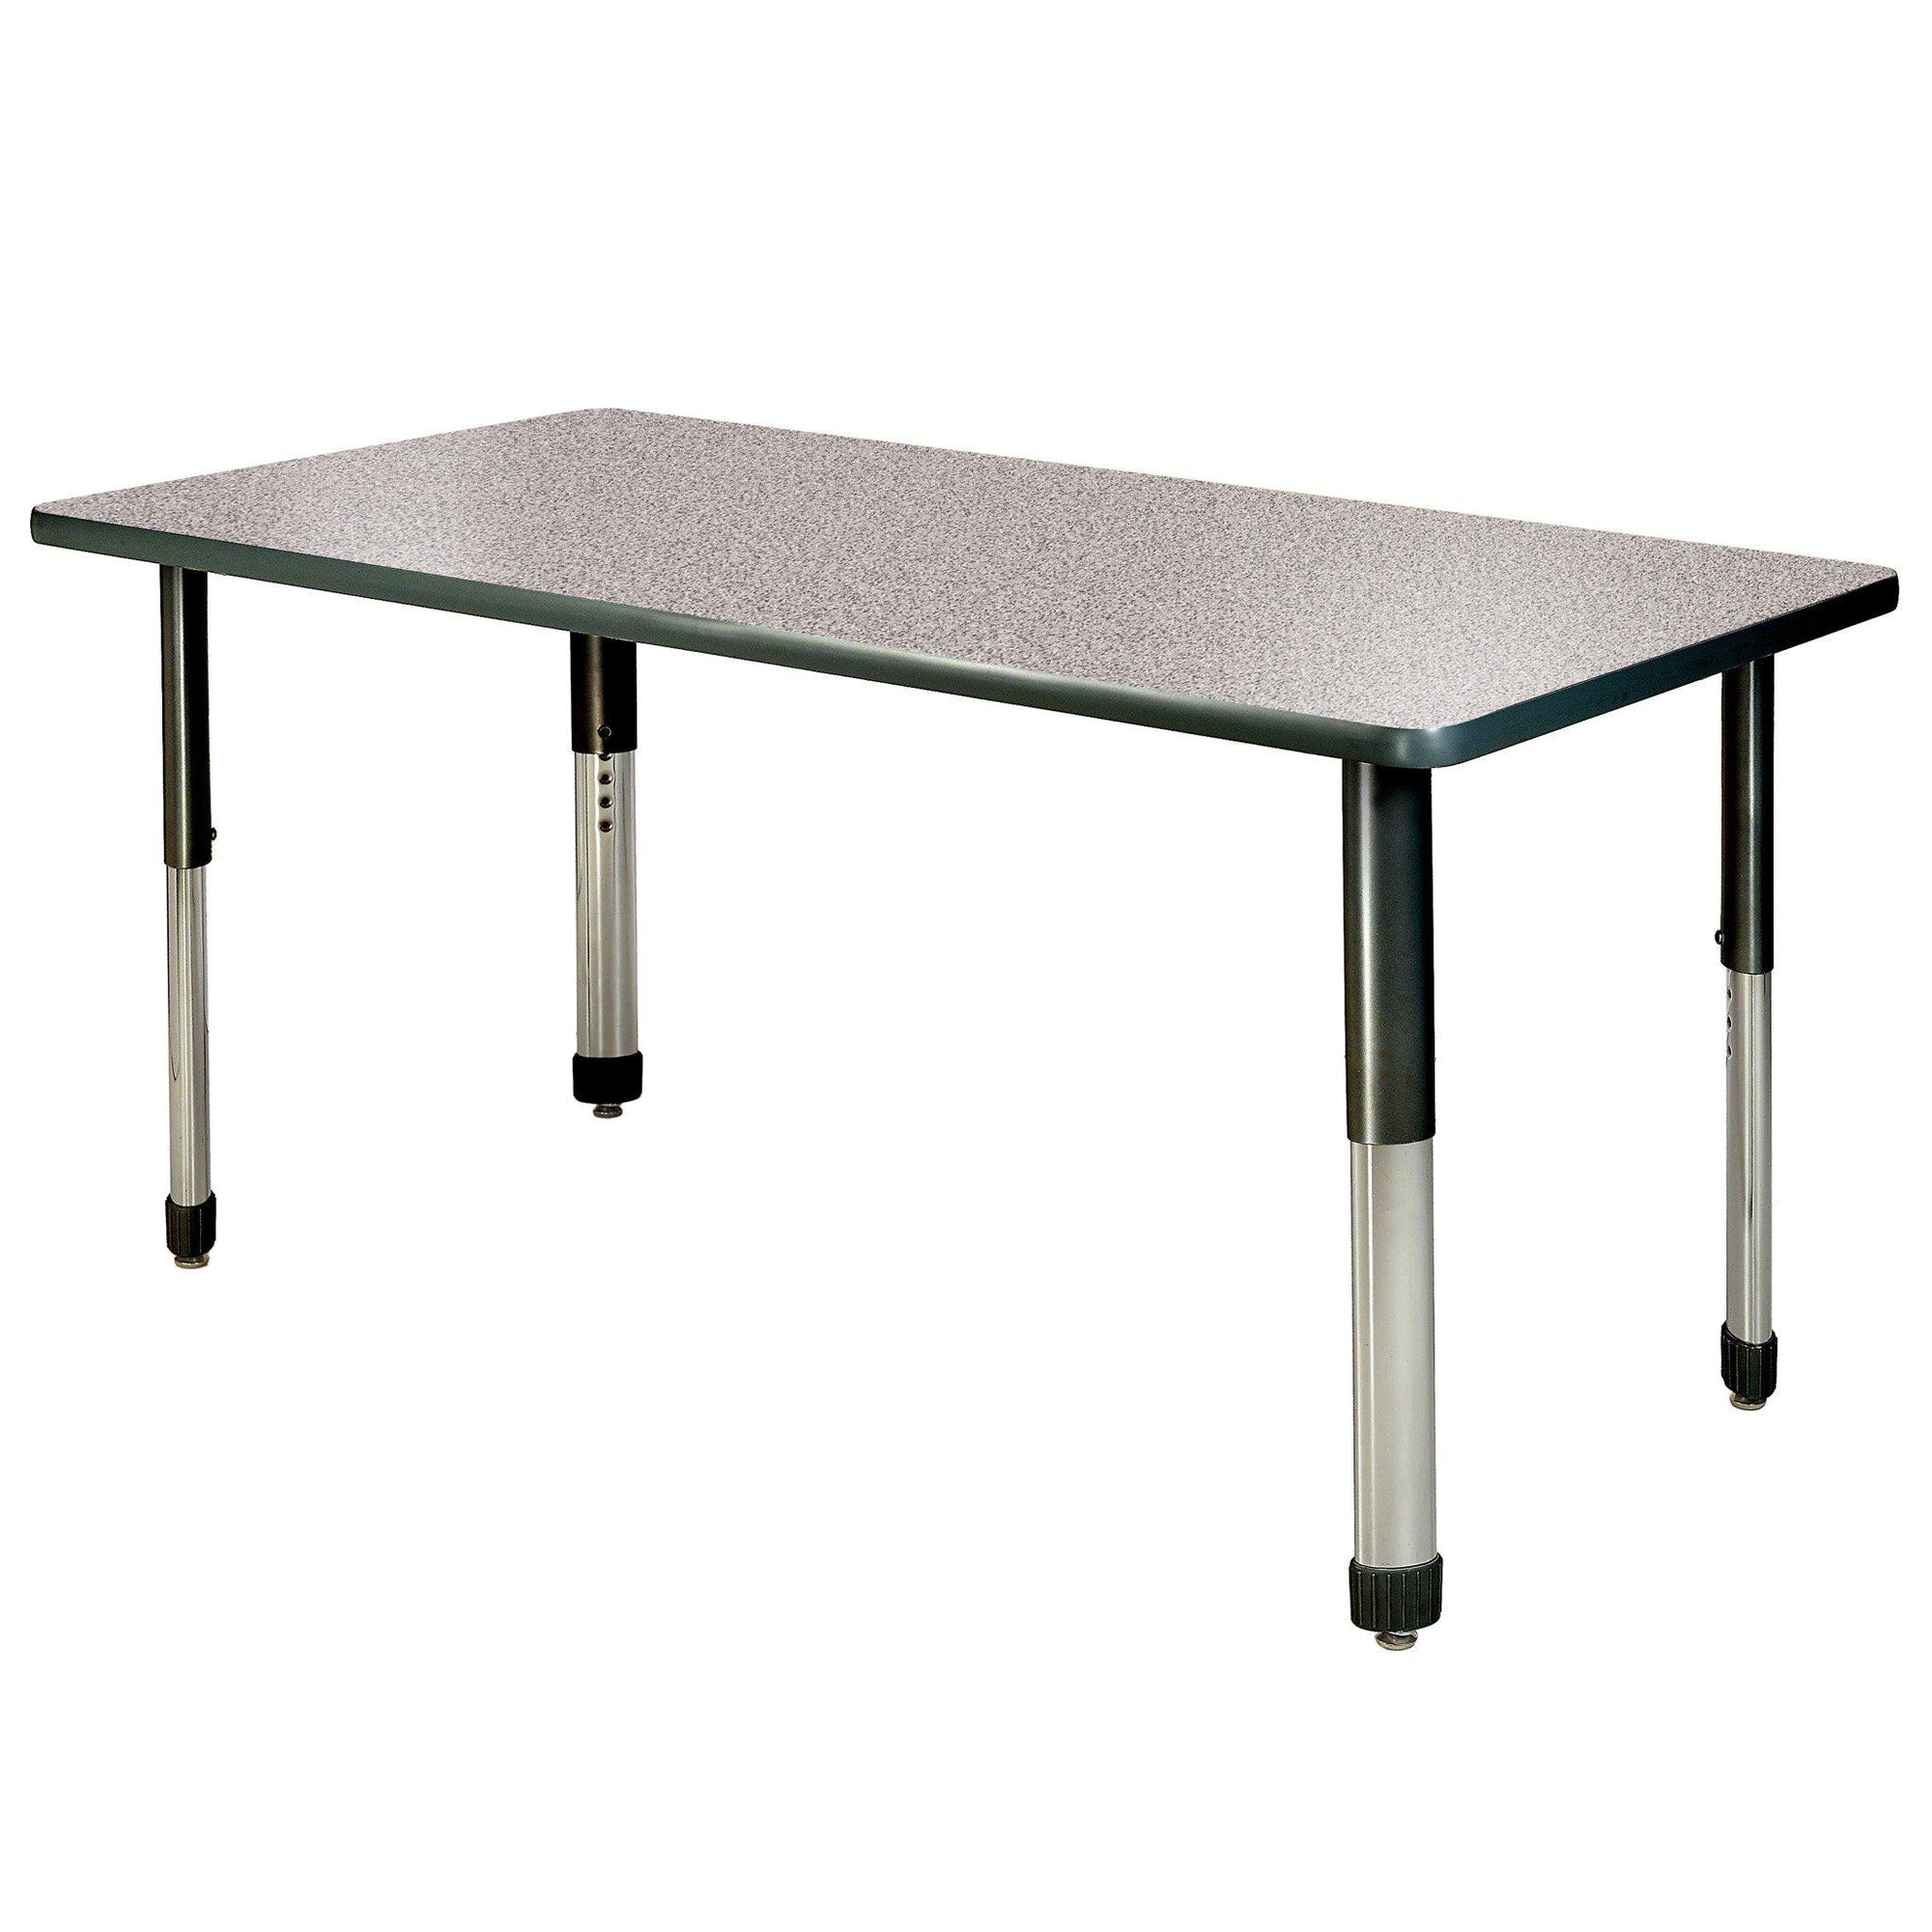 "Aero Activity Table, 30"" x 72"" Rectangle, Oval Adjustable Height Legs"